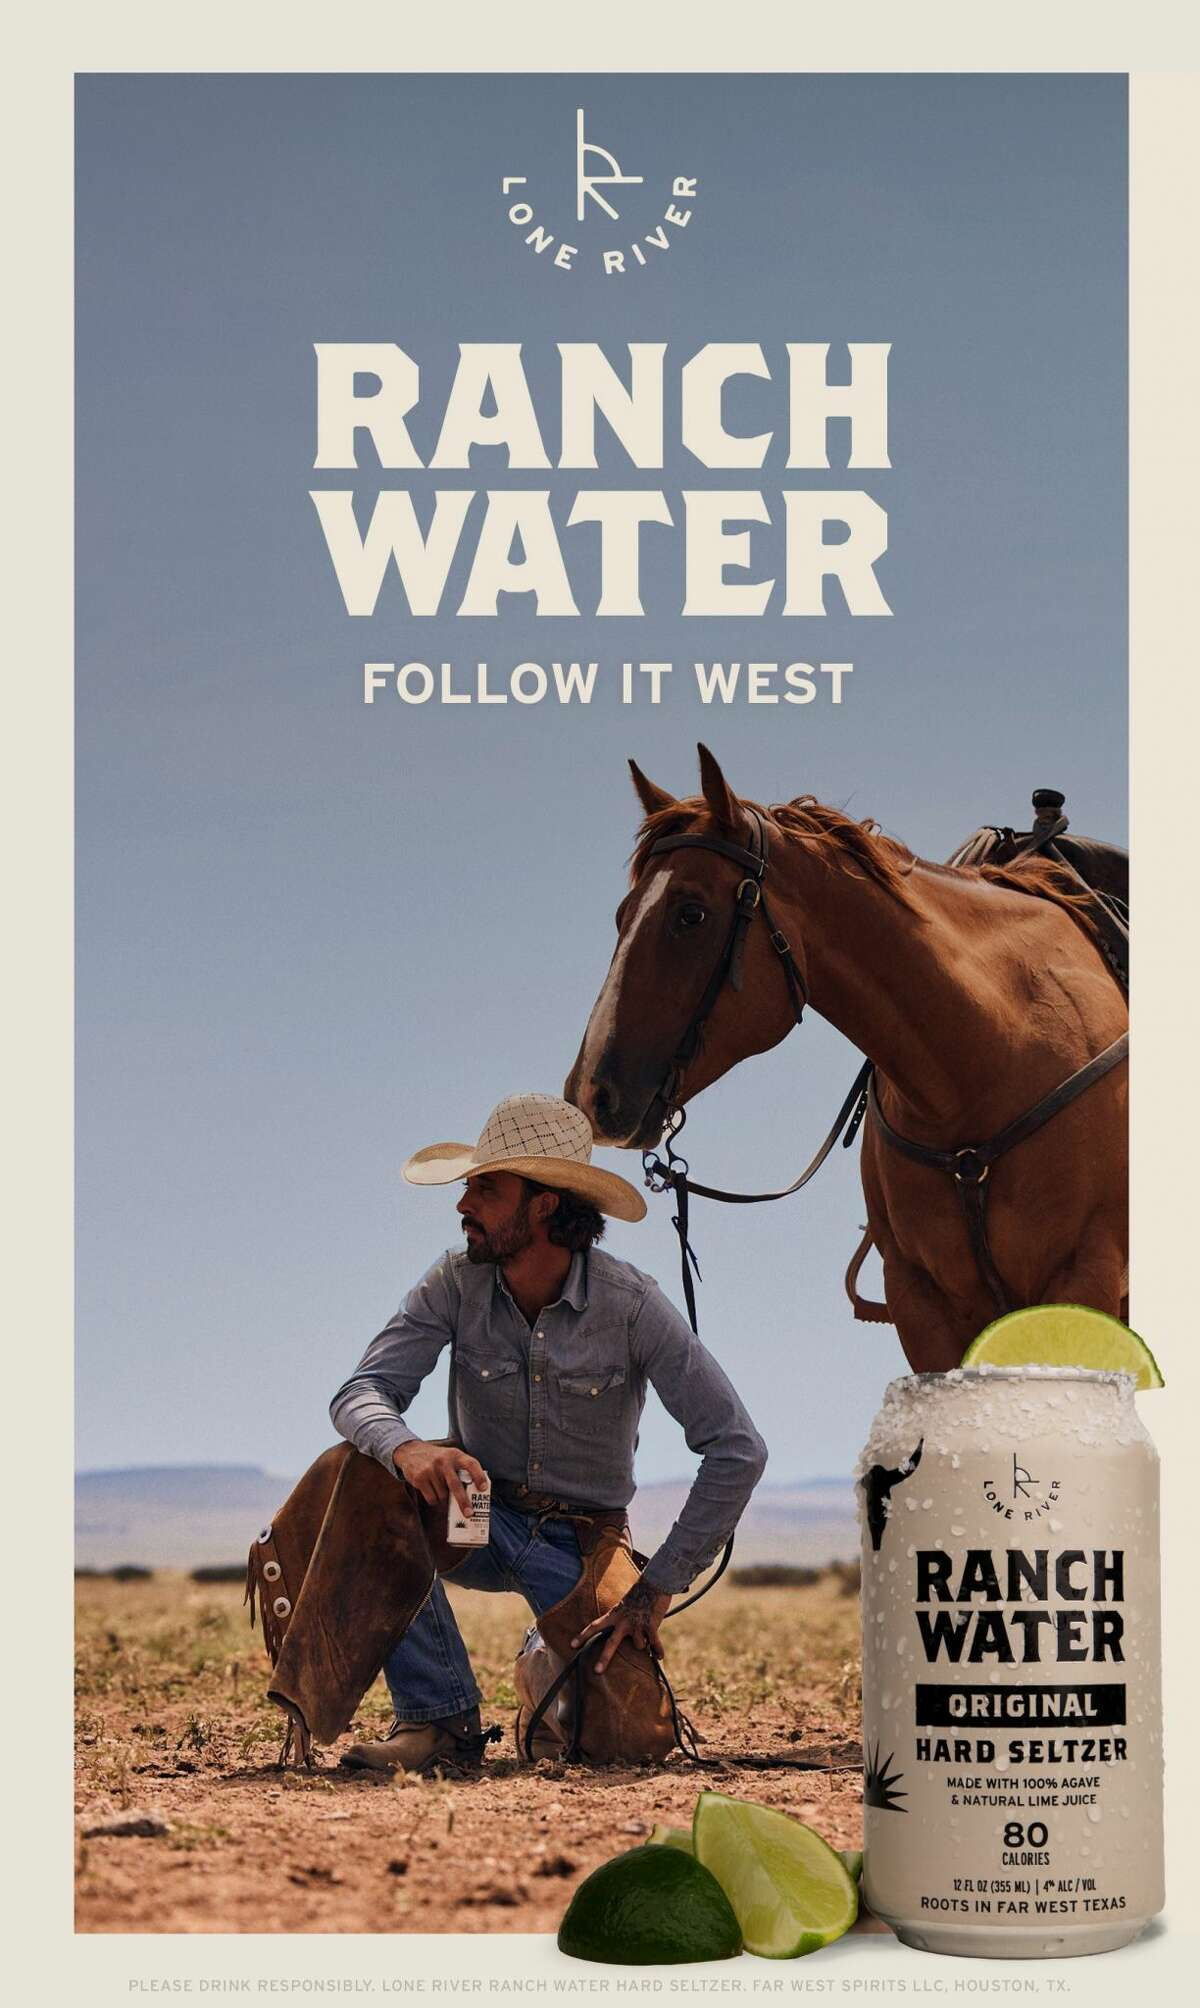 """Lone River Beverage Co. is partnering with Oscar and Grammy award-winning artist and star of """"Yellowstone,"""" Ryan Bingham, to launch its first national campaign """"Follow It West."""" Lone River Beverage Co. founder is a Midland native and started the No. 1 ranch water brand in the U.S."""